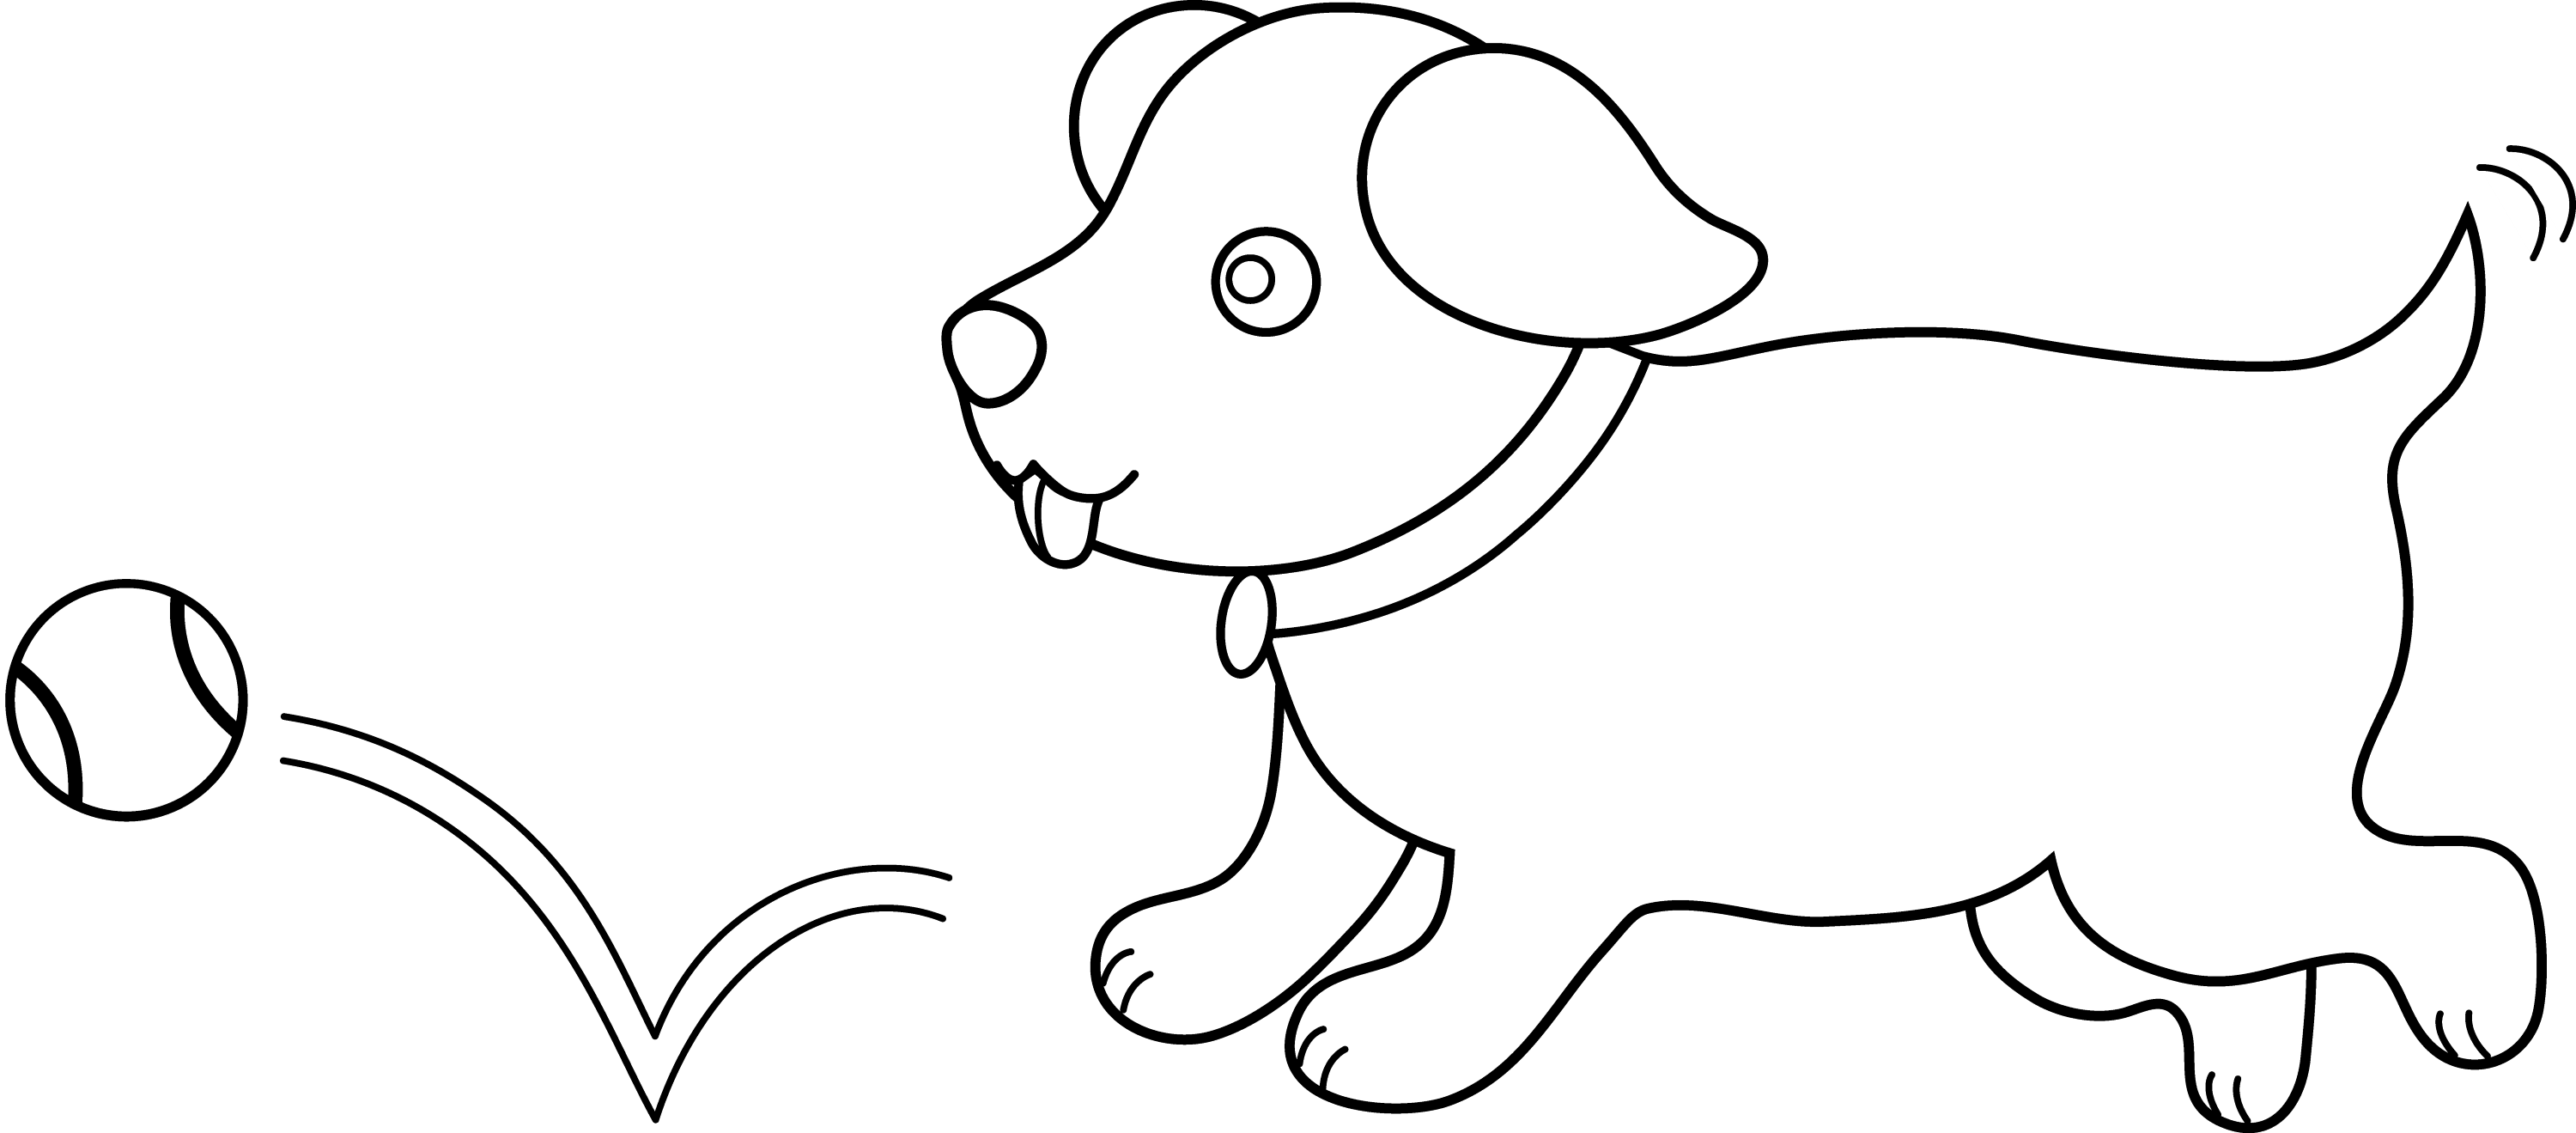 small puppy coloring pages pin em selebritas puppy coloring pages small